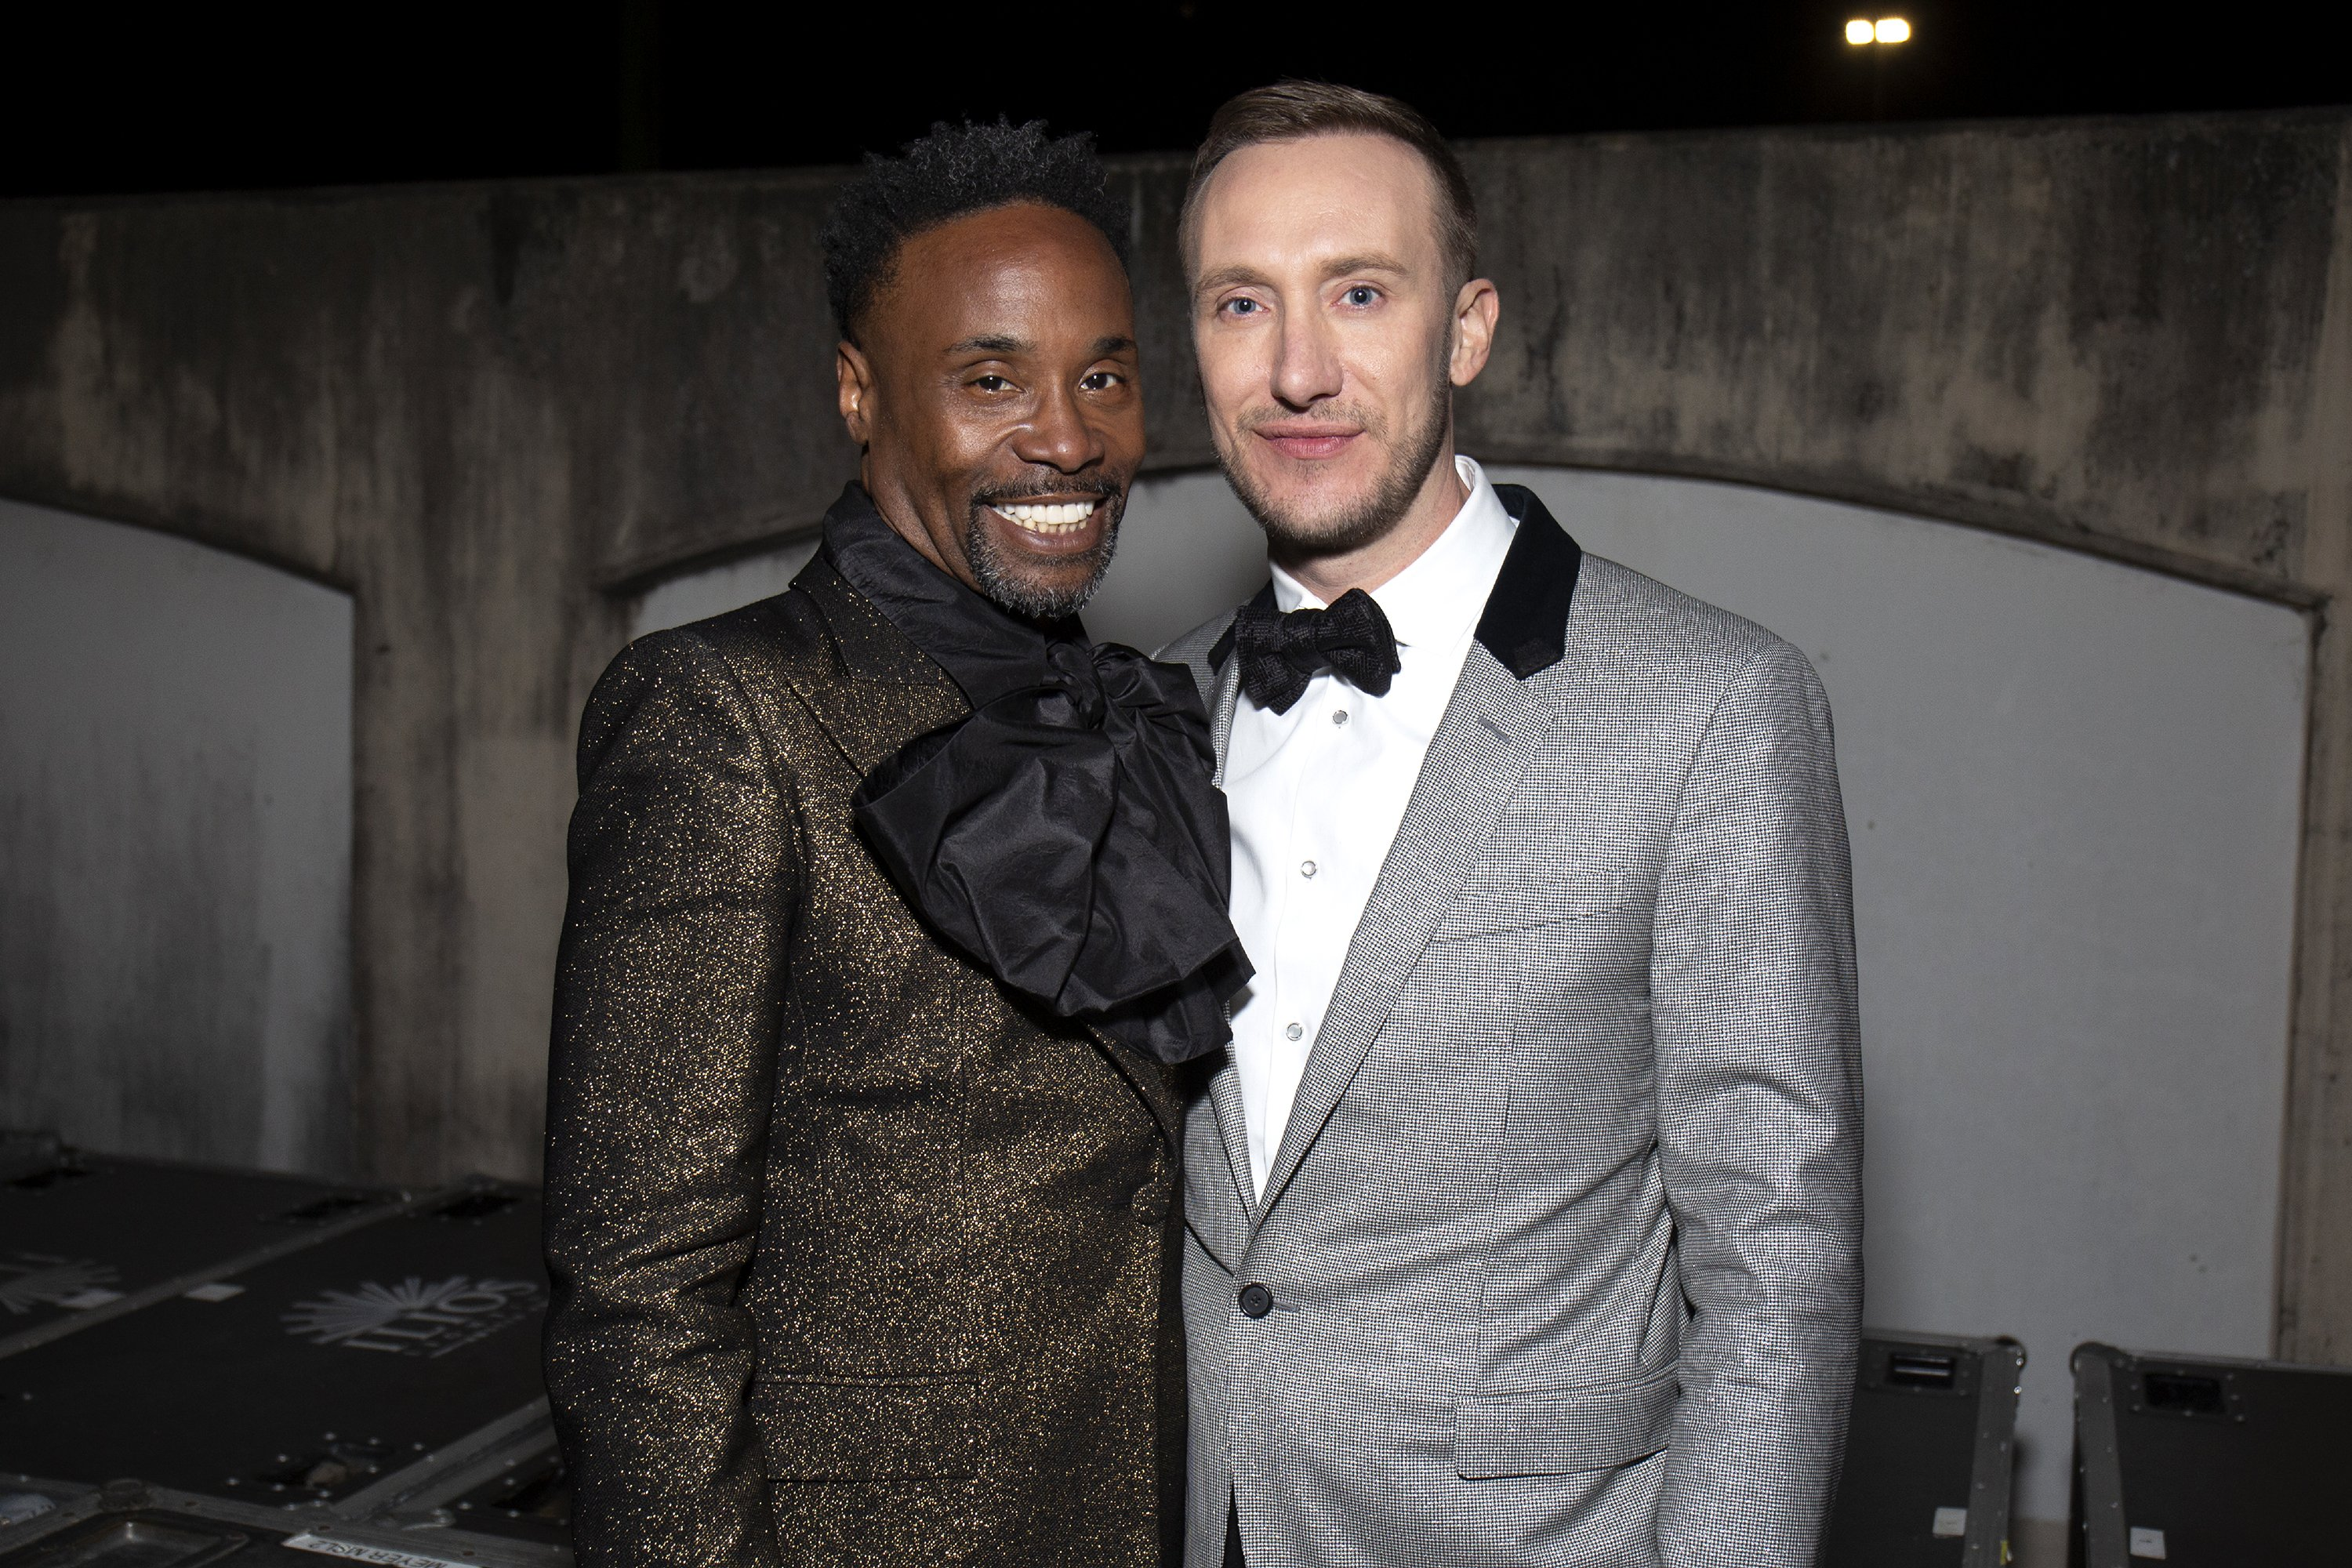 Billy Porter and Adam Porter-Smith attending Dick Clark's New Year's Rockin' Eve Celebratiion in New Orleans City, in December 2019. | Image: Getty Images.